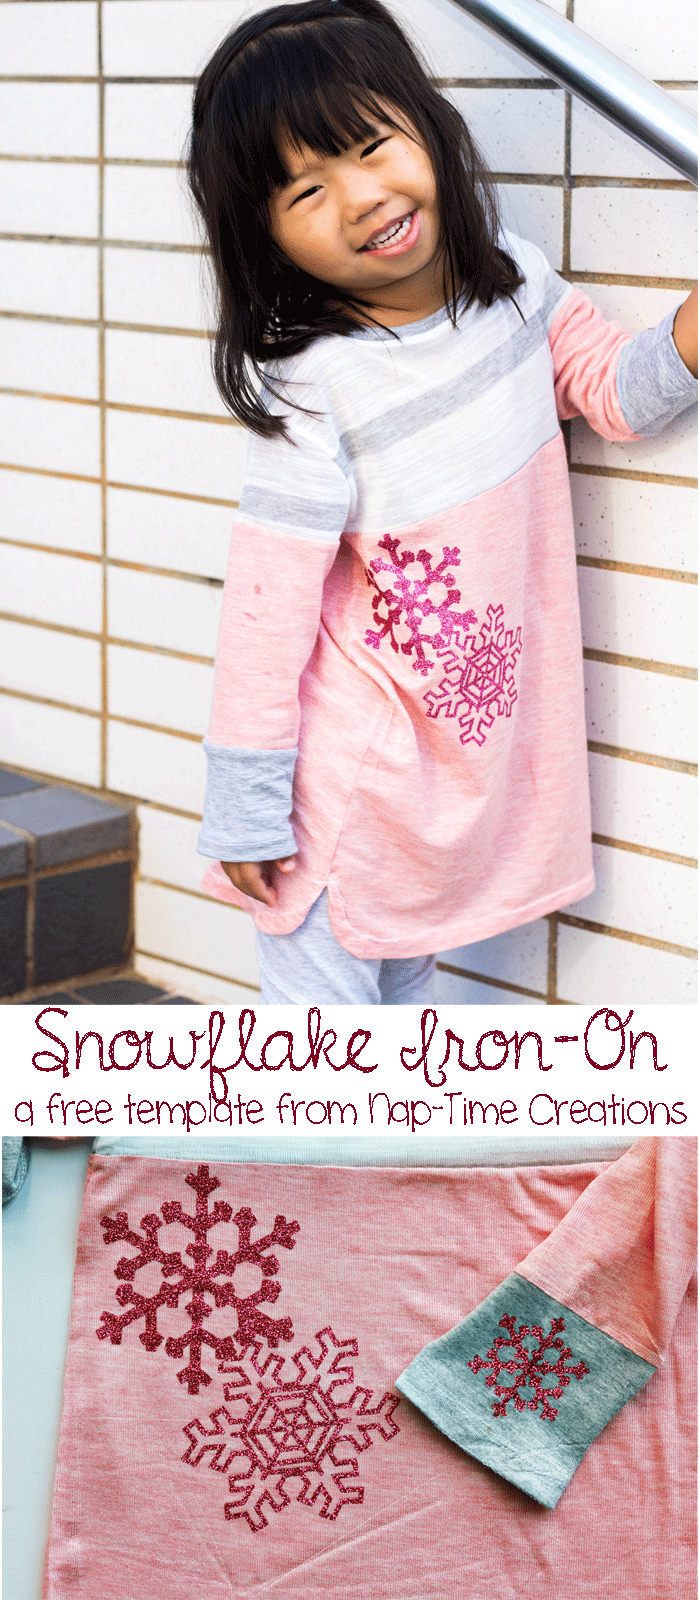 snowflake iron-on template -a-free-template-from-nap-time-creations-for-silhouette-or-in-svg